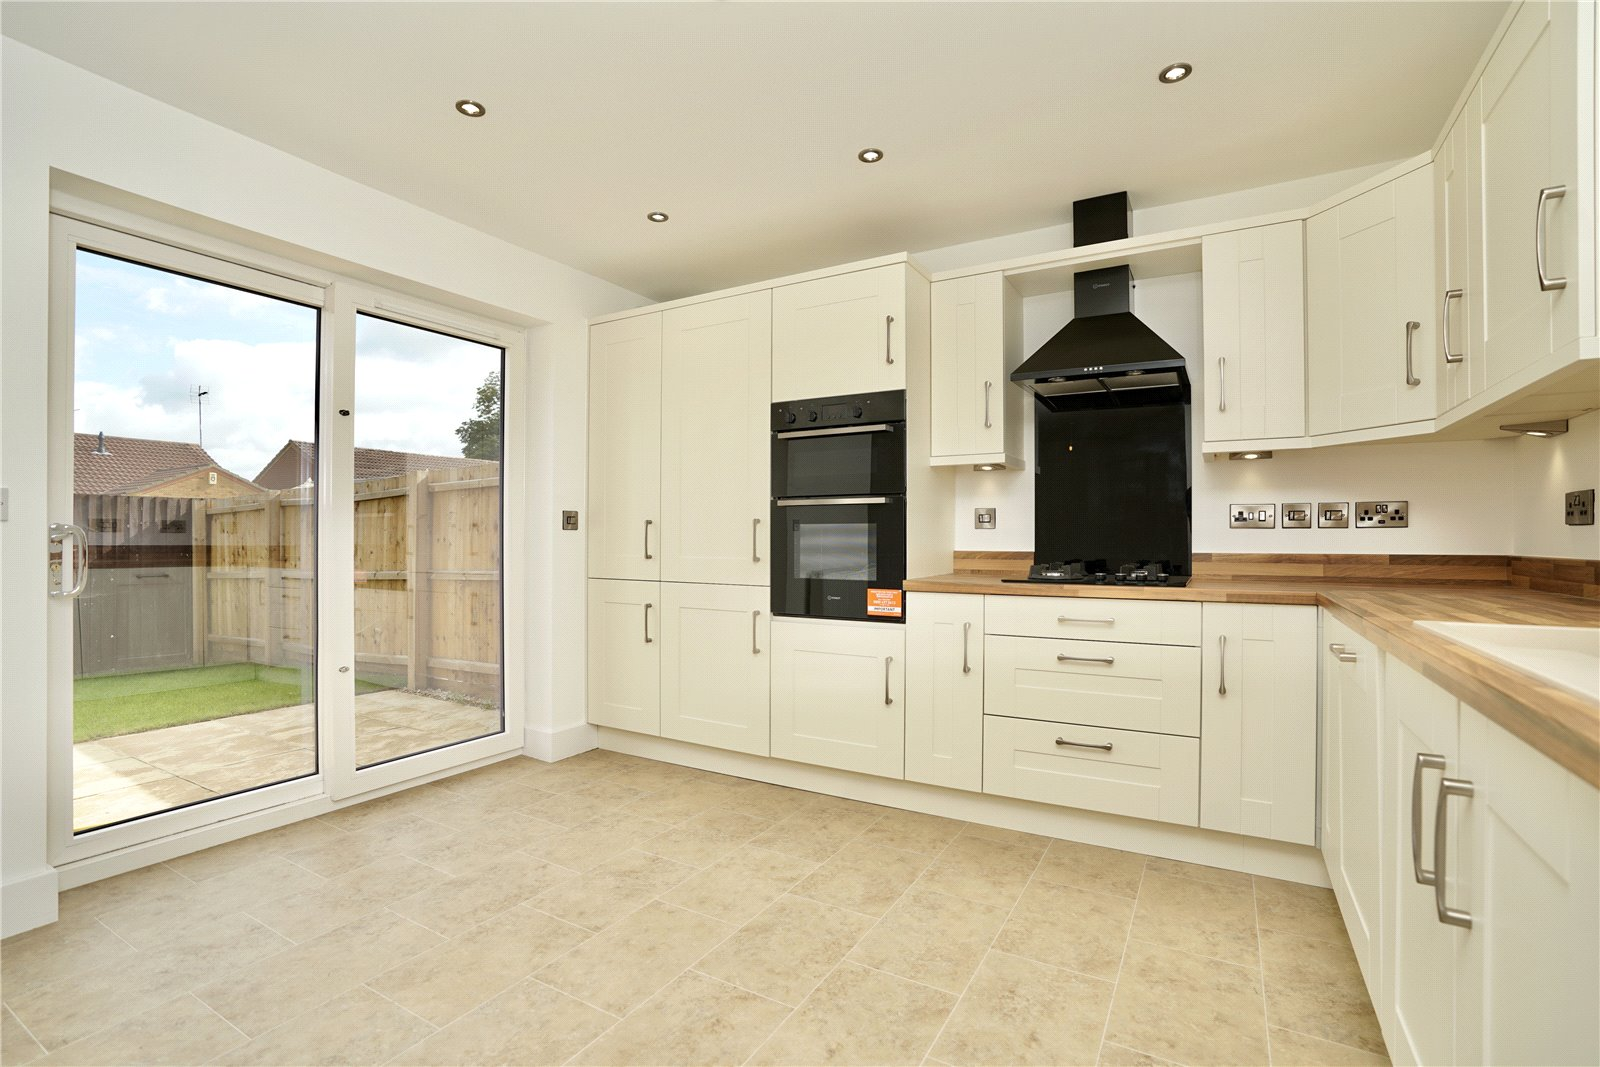 3 bed bungalow for sale in Whittlesey, PE7 1RU  - Property Image 5